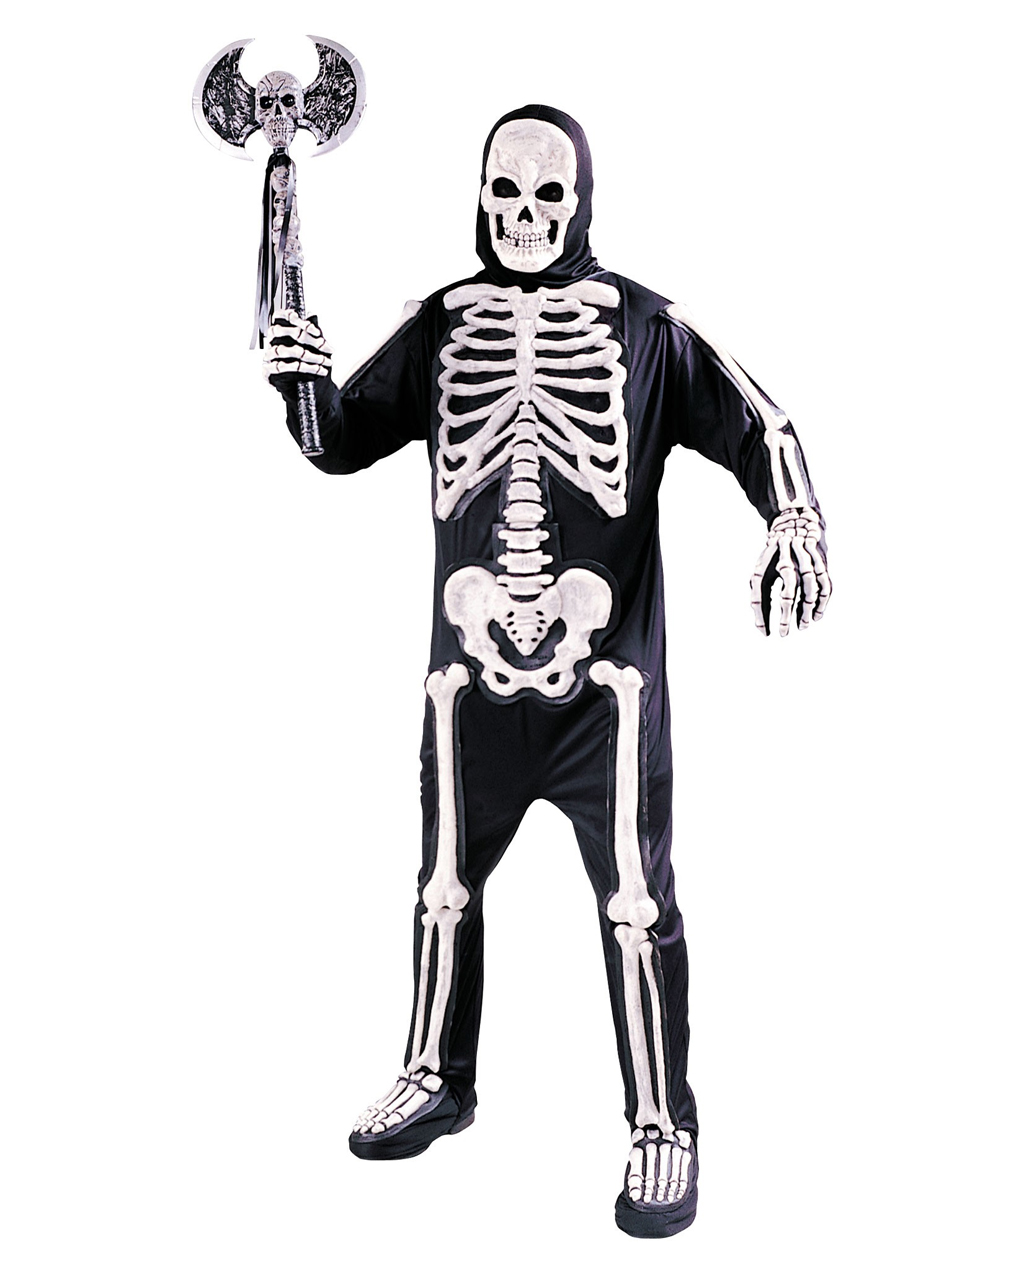 cdb4298ac104 3D Skeleton Costume One Size for Halloween